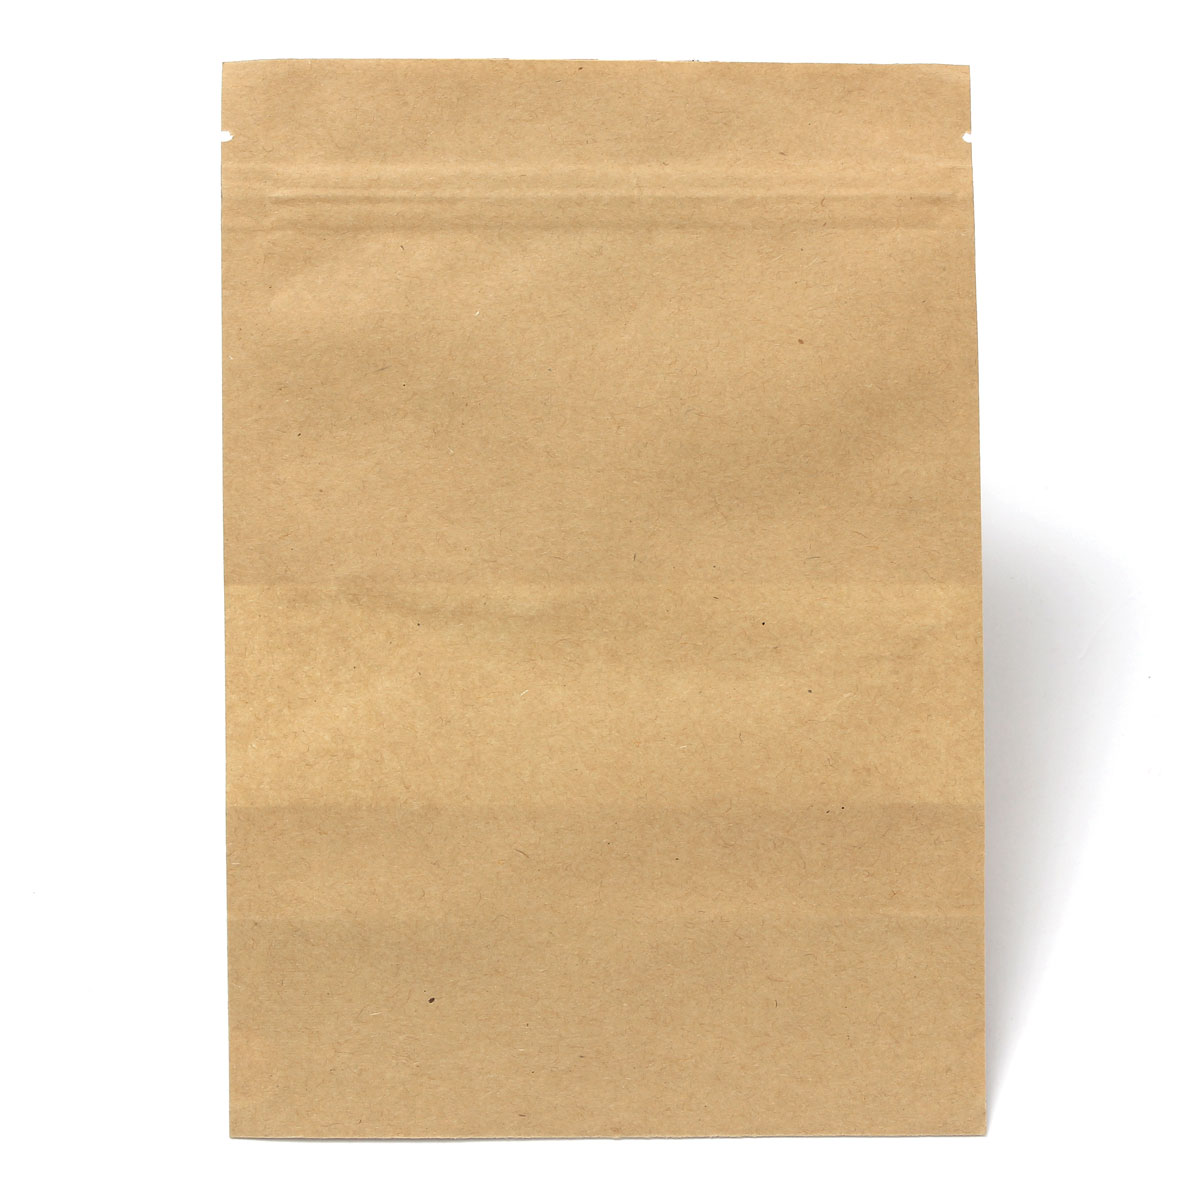 10pcs Kraft Paper Bags Packaging Packing Stand Up Bag With Zipper for Food Storage 140x200mm